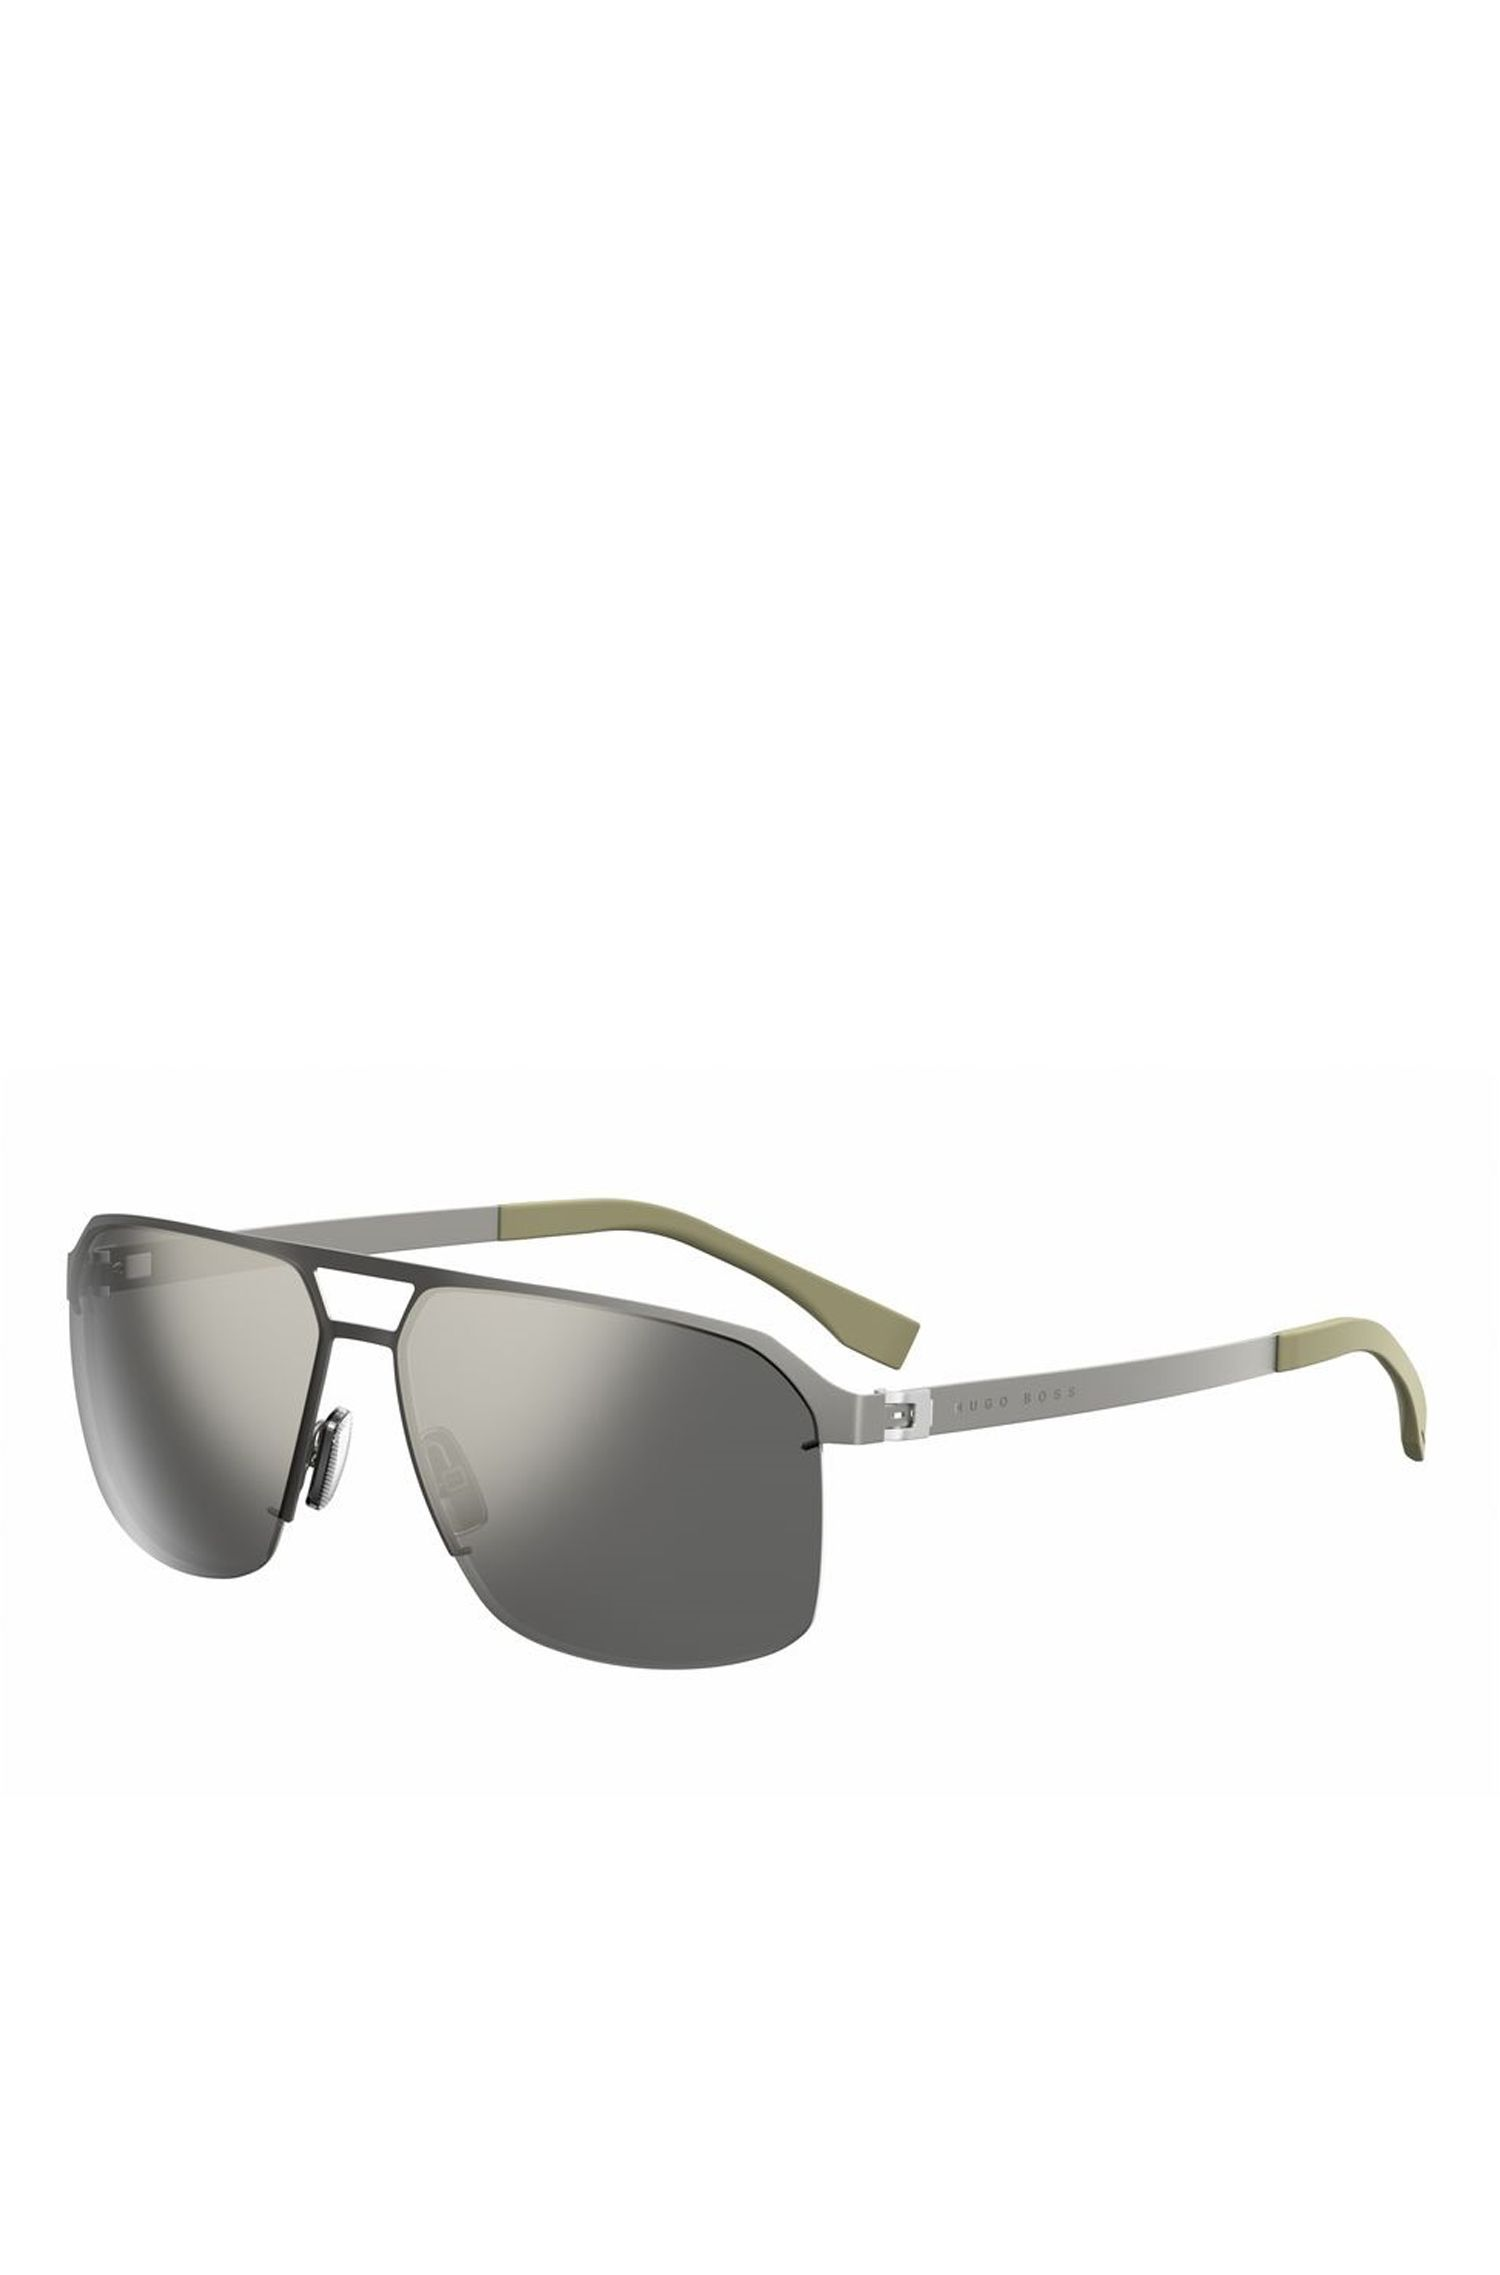 Navigator Flat Metal Sunglasses | BOSS 0839S, Assorted-Pre-Pack